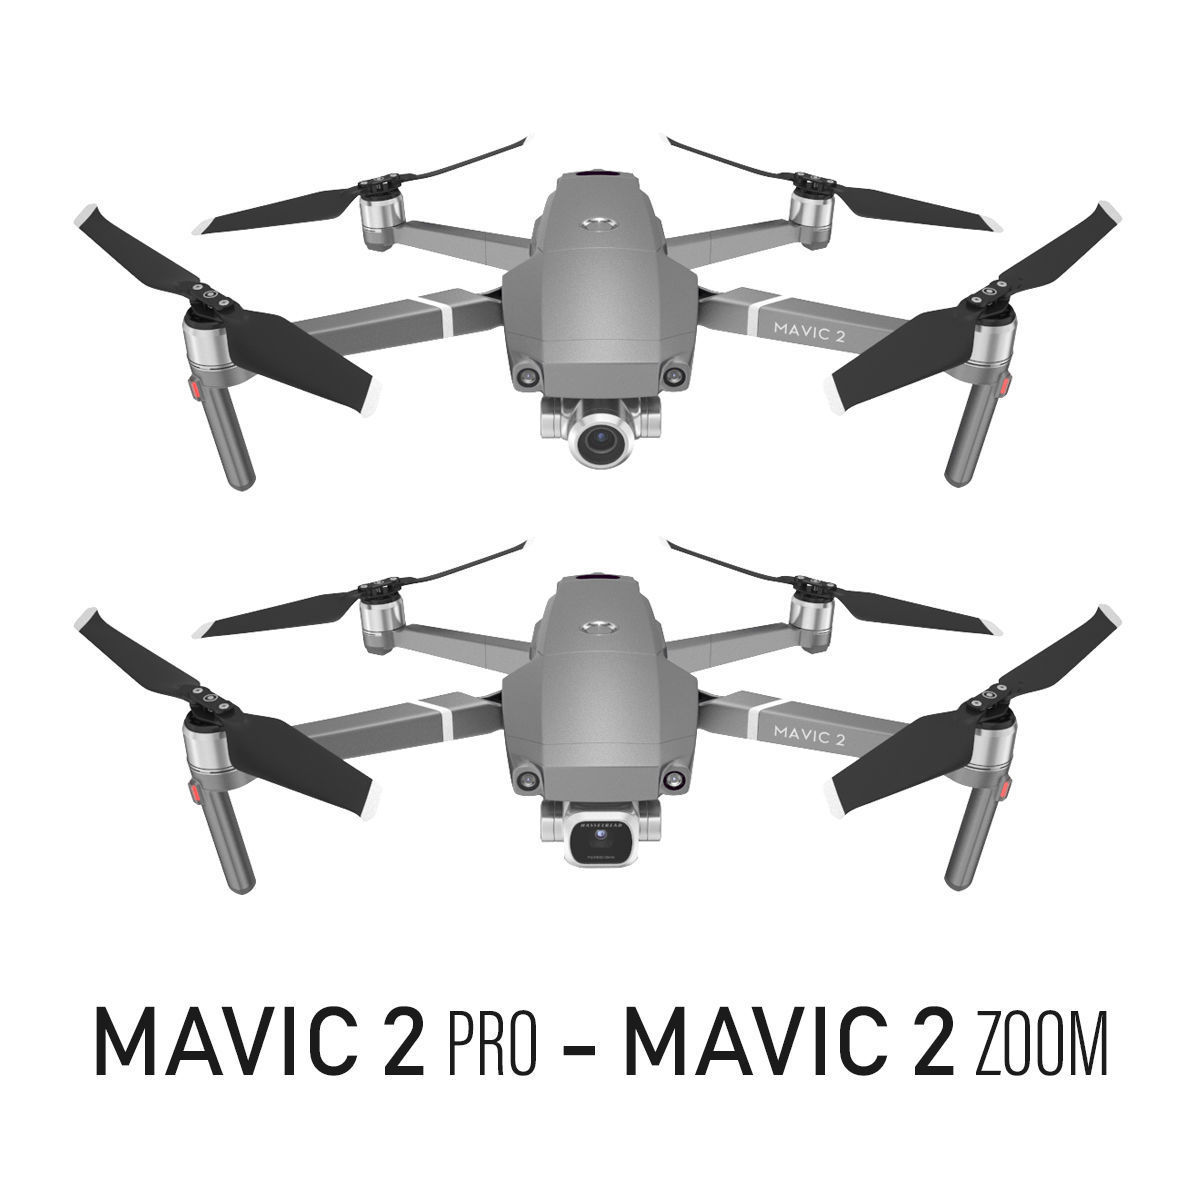 Mavic 2 Pro and Mavic 2 Zoom